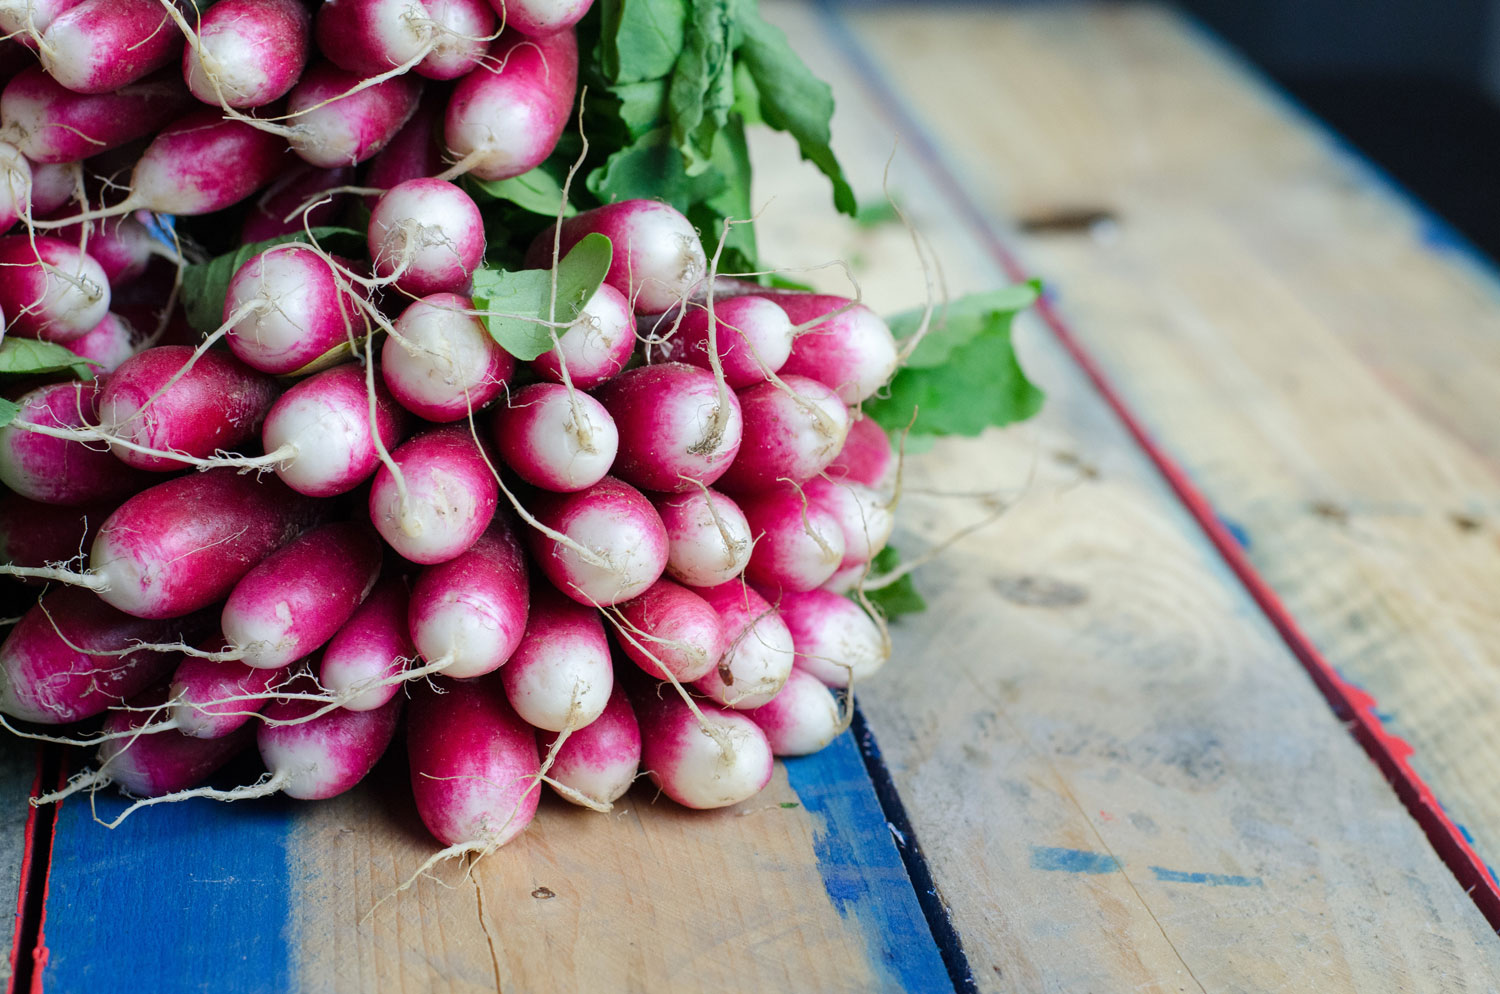 Fresh local radishes for restaurant supply.